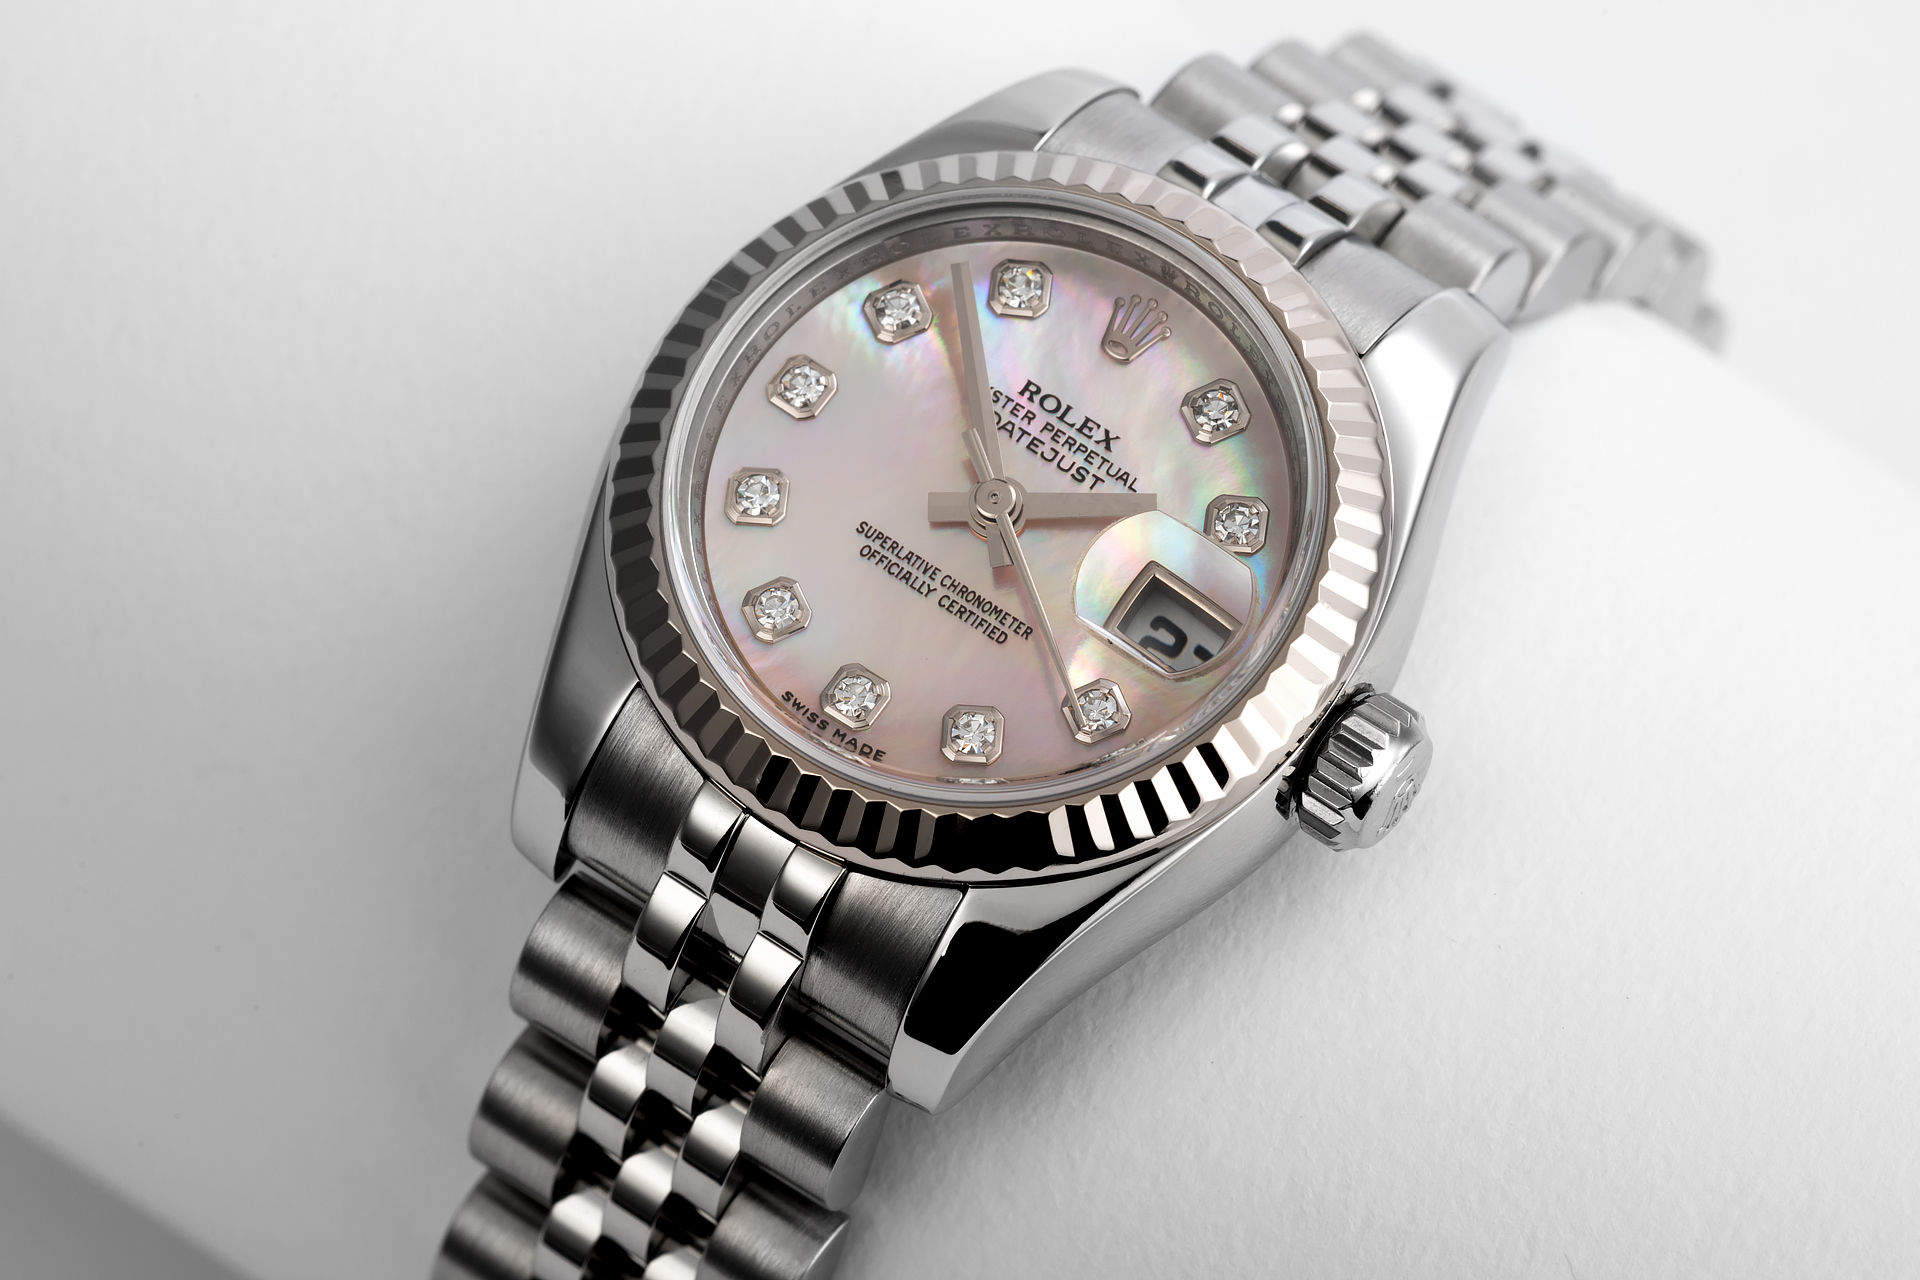 ref 179174 | 'White Gold Bezel' Mother Of Pearl | Rolex Datejust